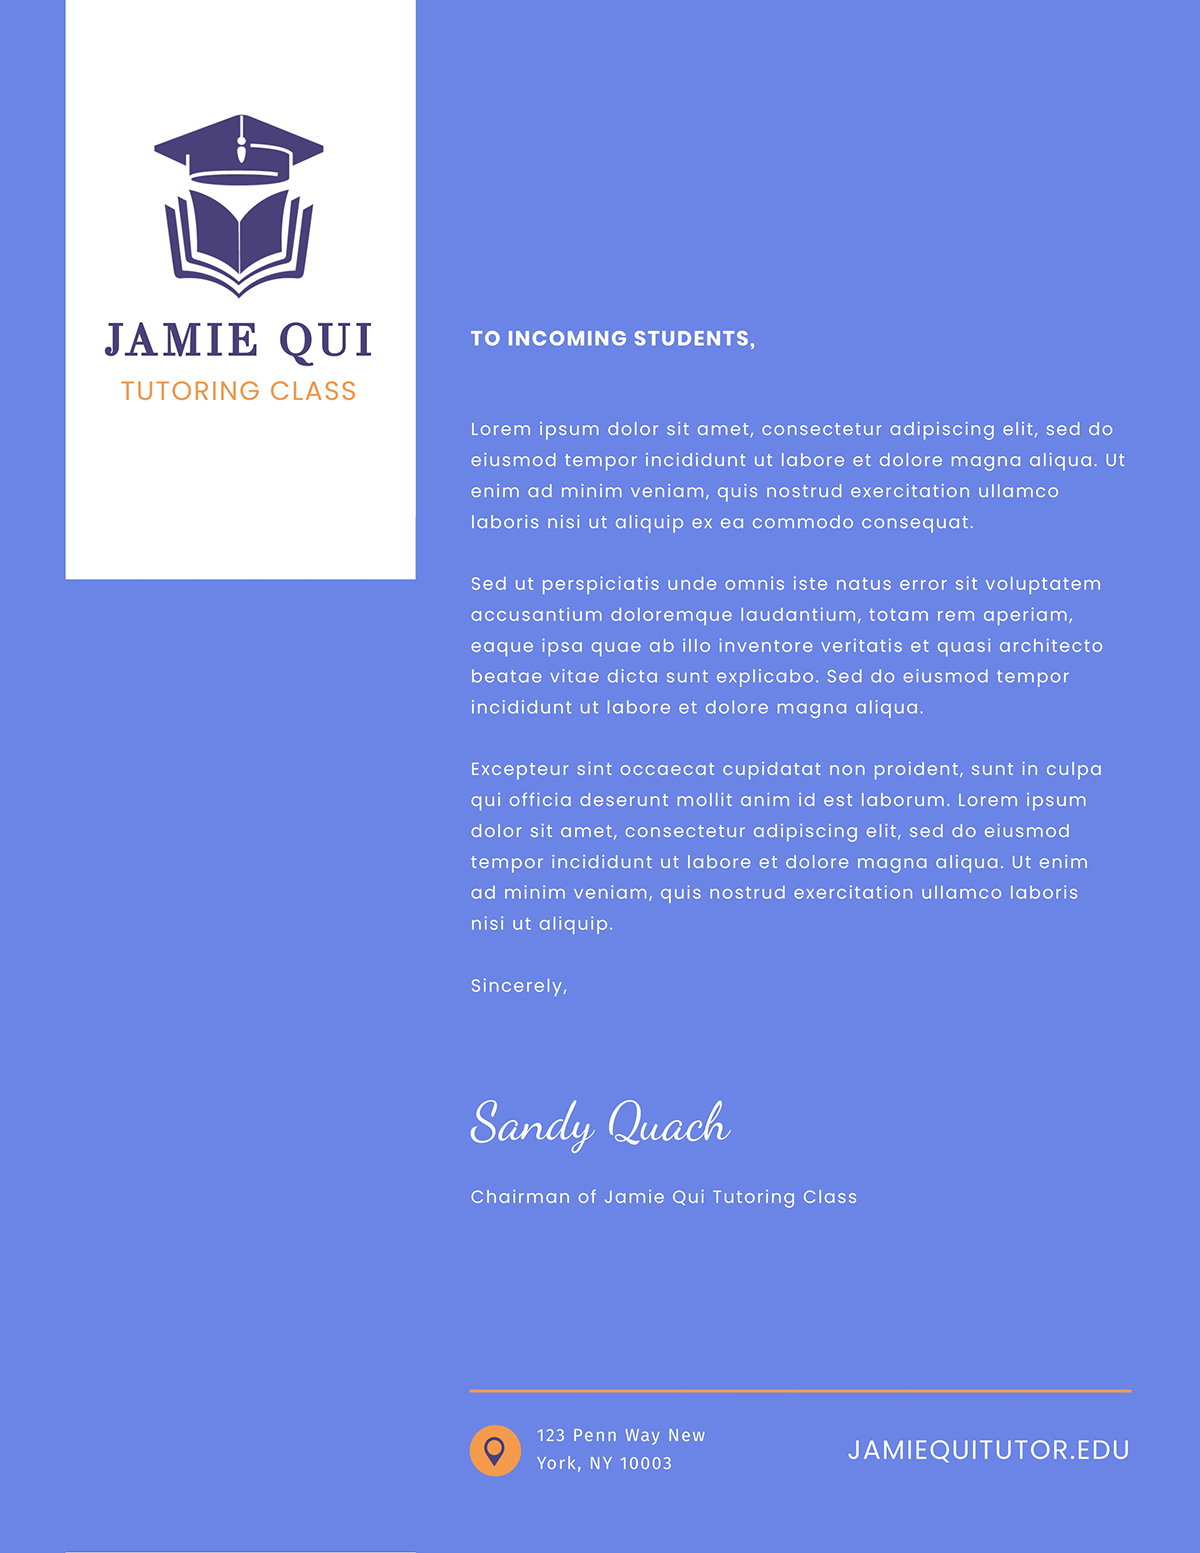 Blue and white business letter template available in Visme.